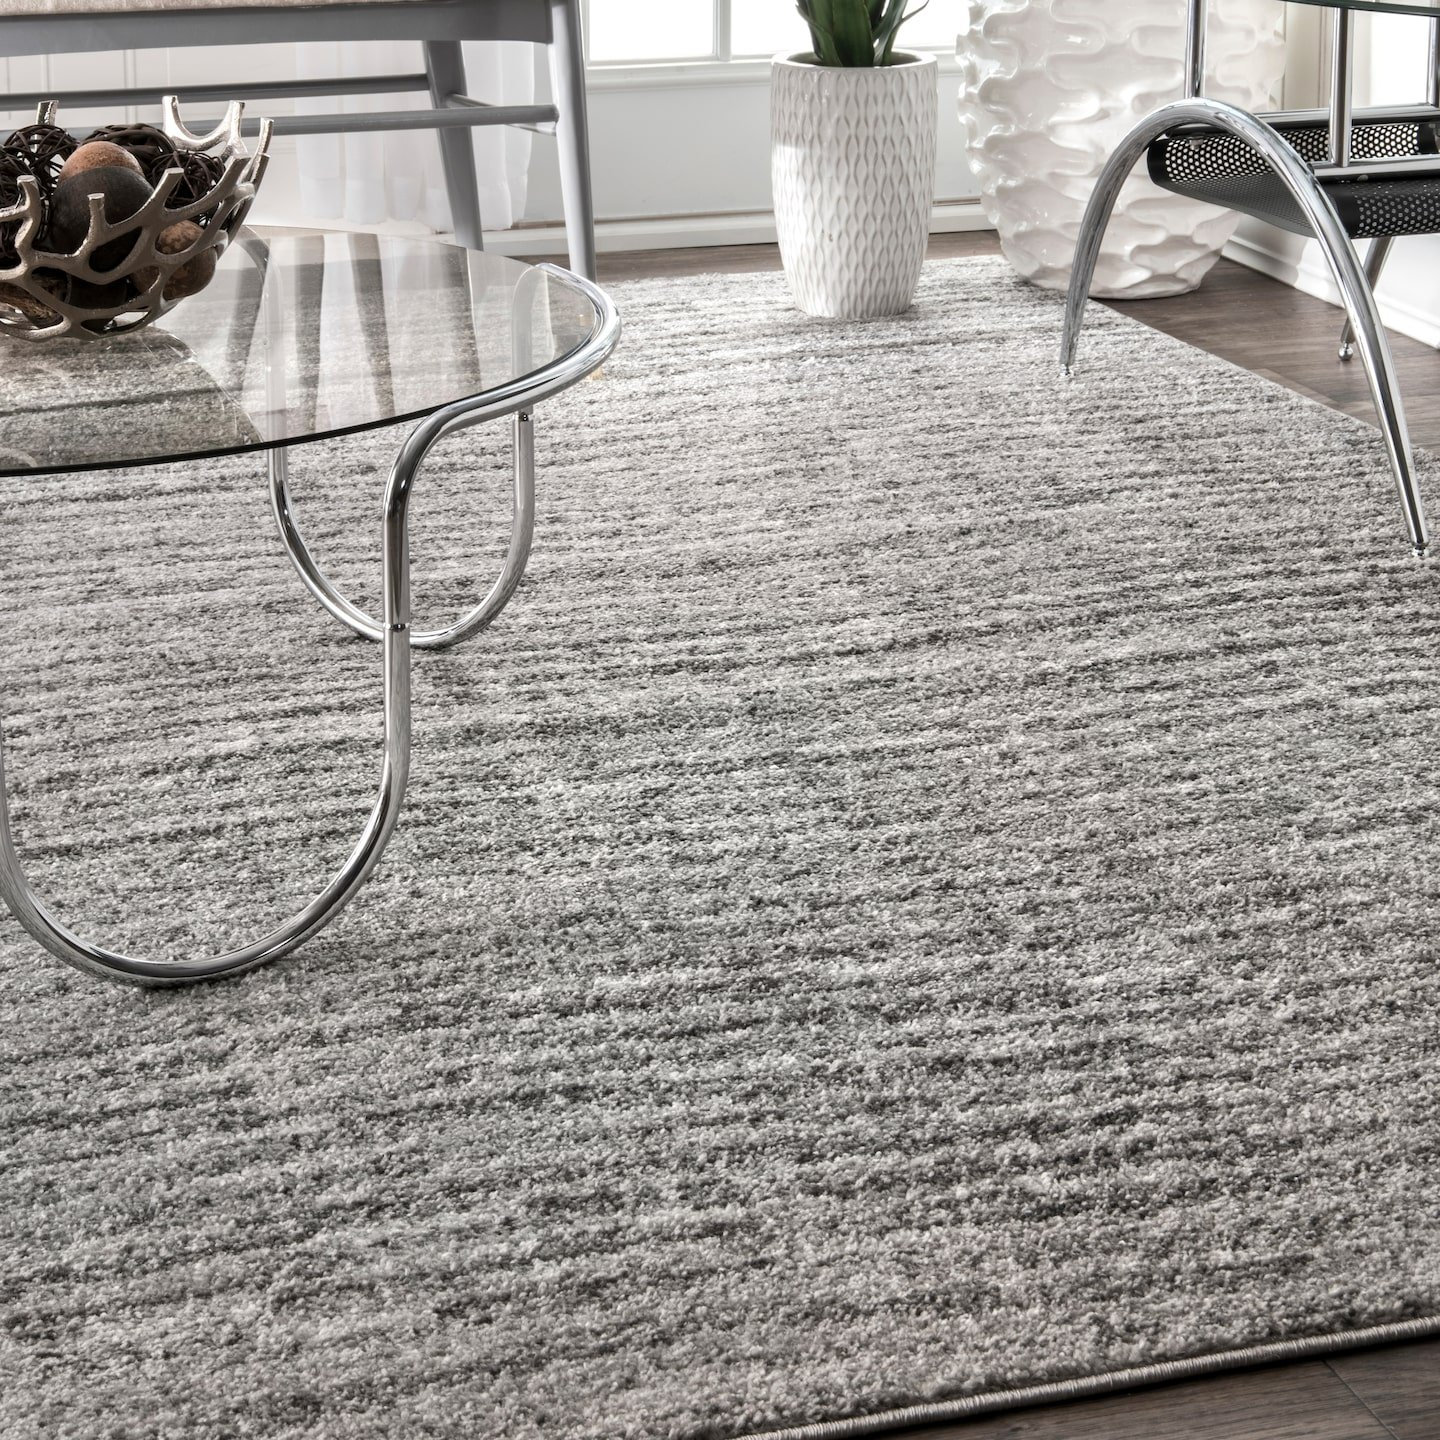 nuLOOM 200BDSM01A-508 Ripple Contemporary Sherill Area Rug, 5' x 8', Grey, Gray by nuLOOM